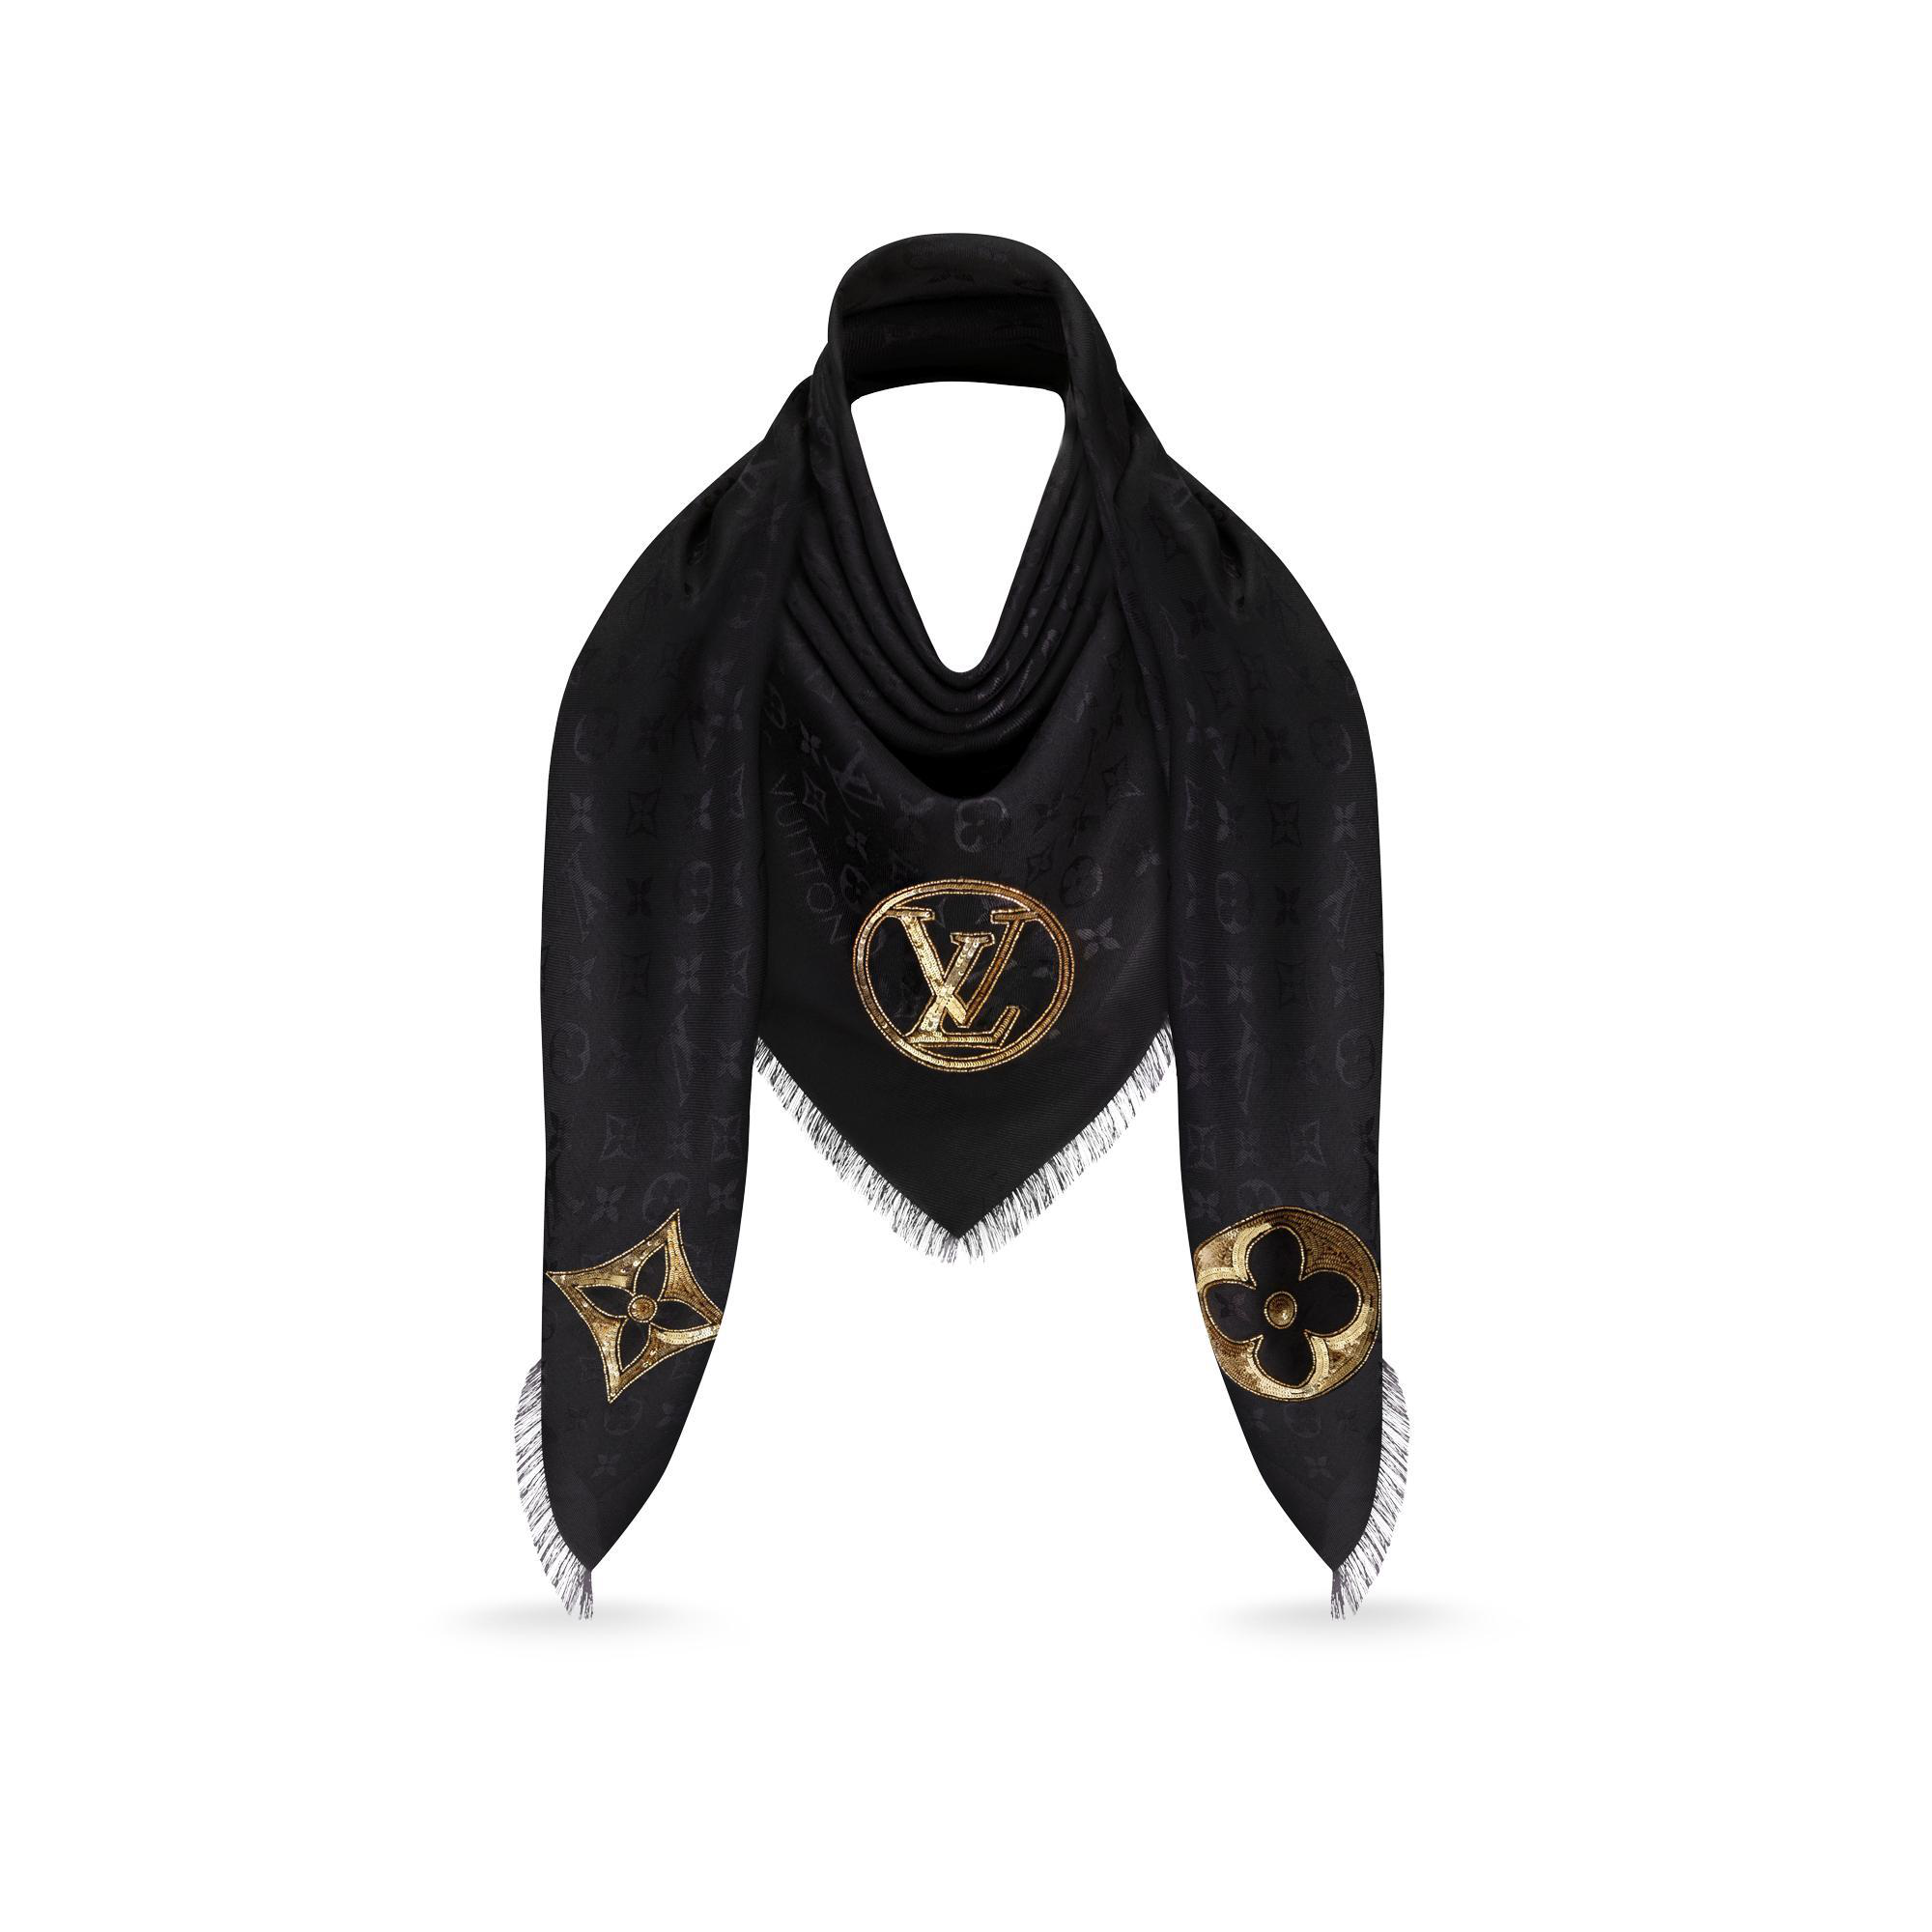 331921a943 Sparkle Lv Monogram Shawl